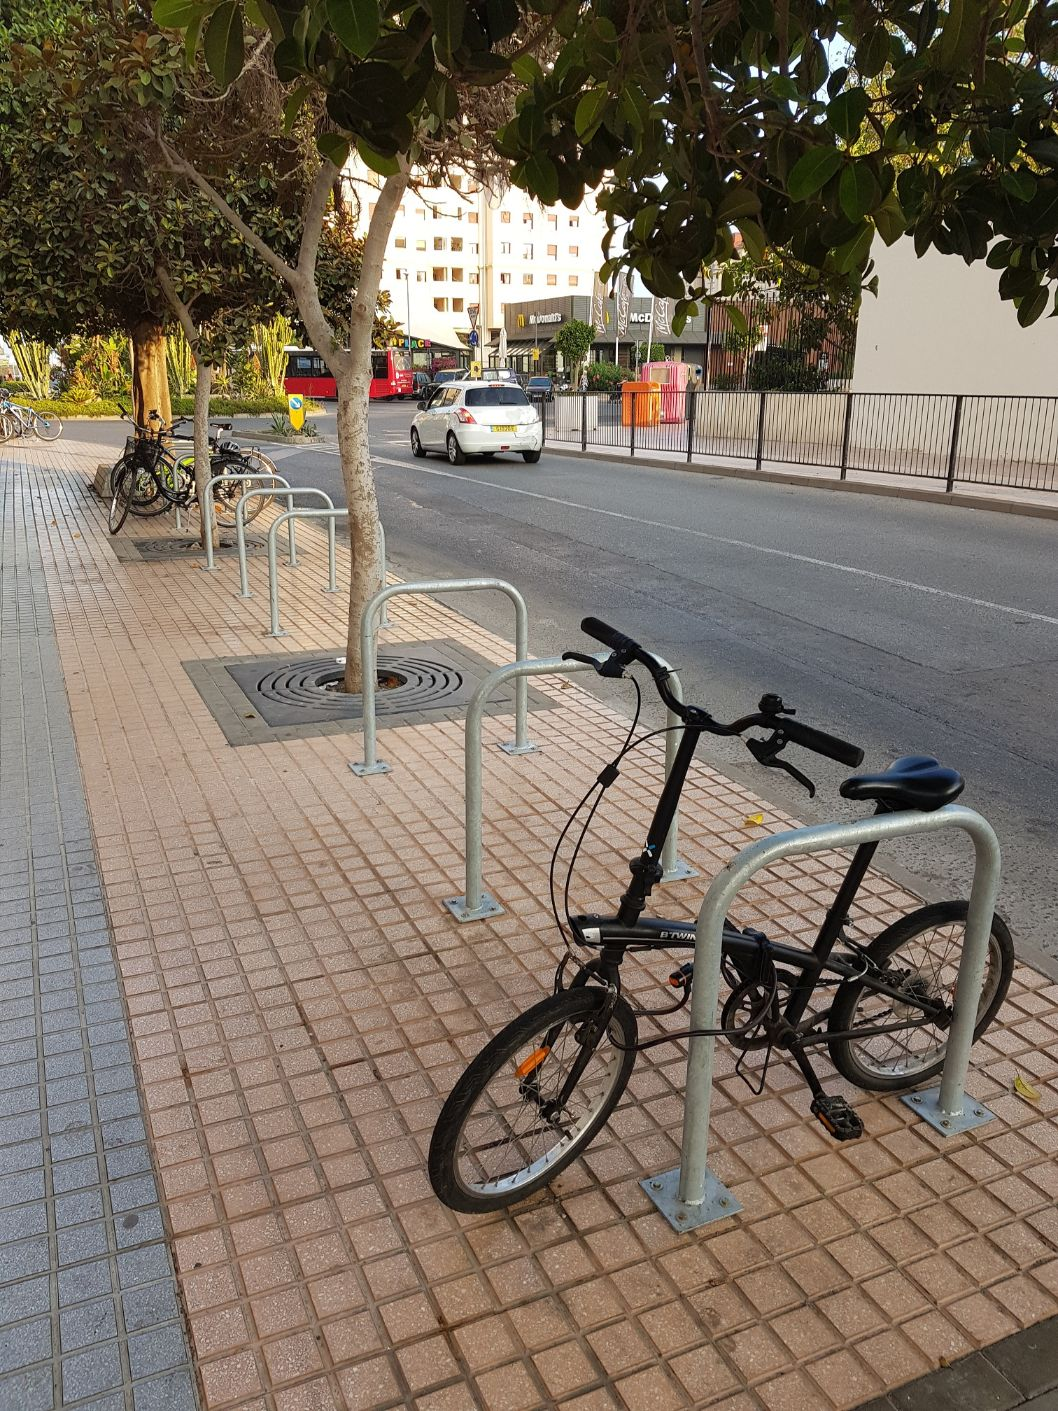 New Bicycle Racks at Nuffield Pool and Europort Road   The